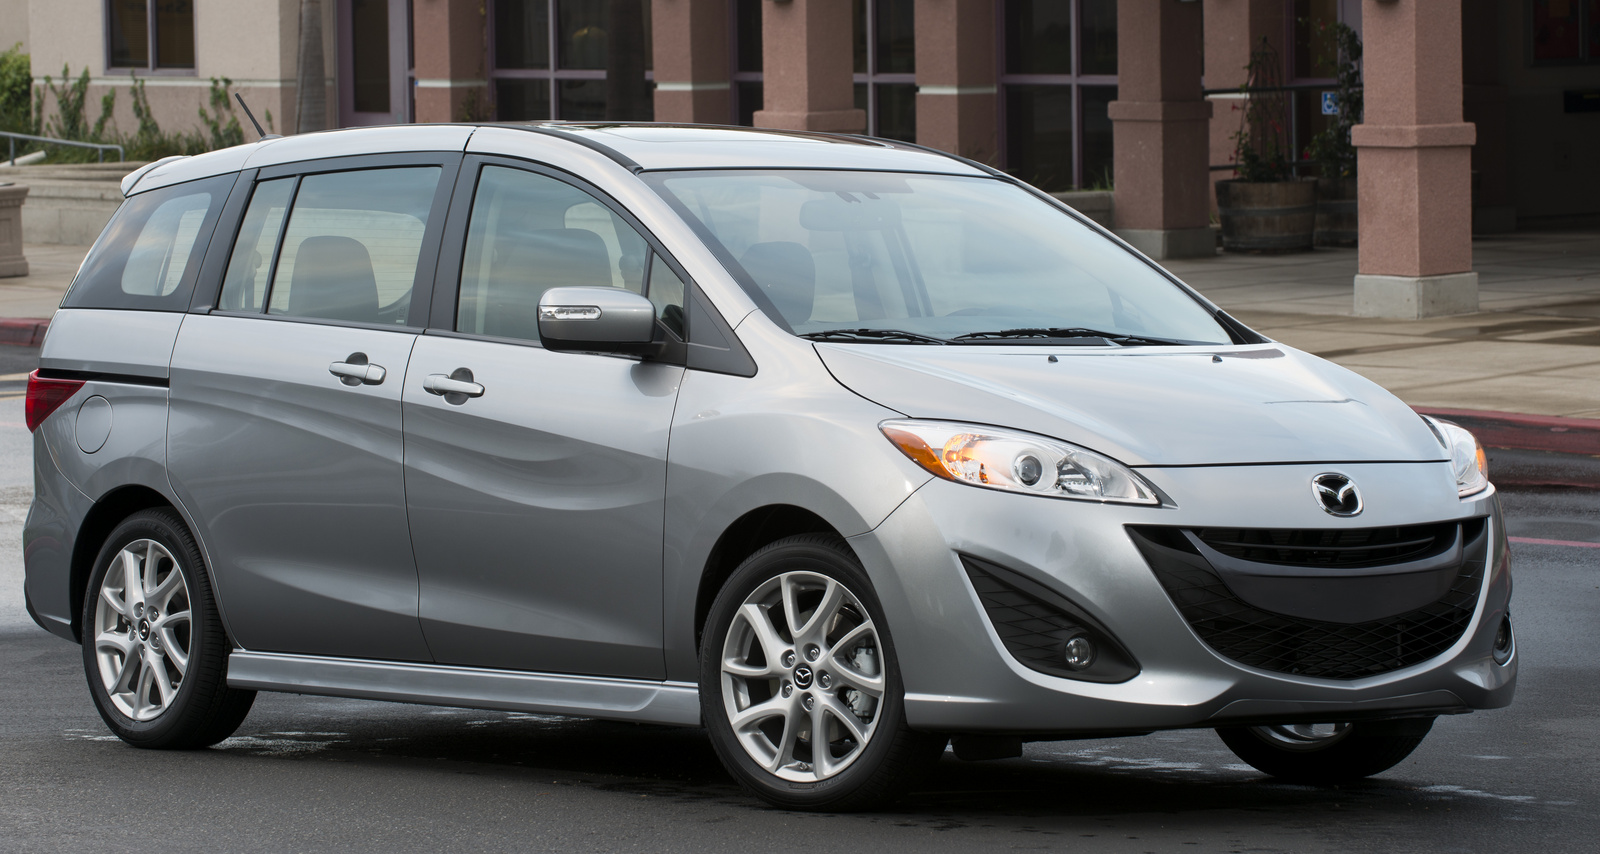 mazda 5 pictures #10